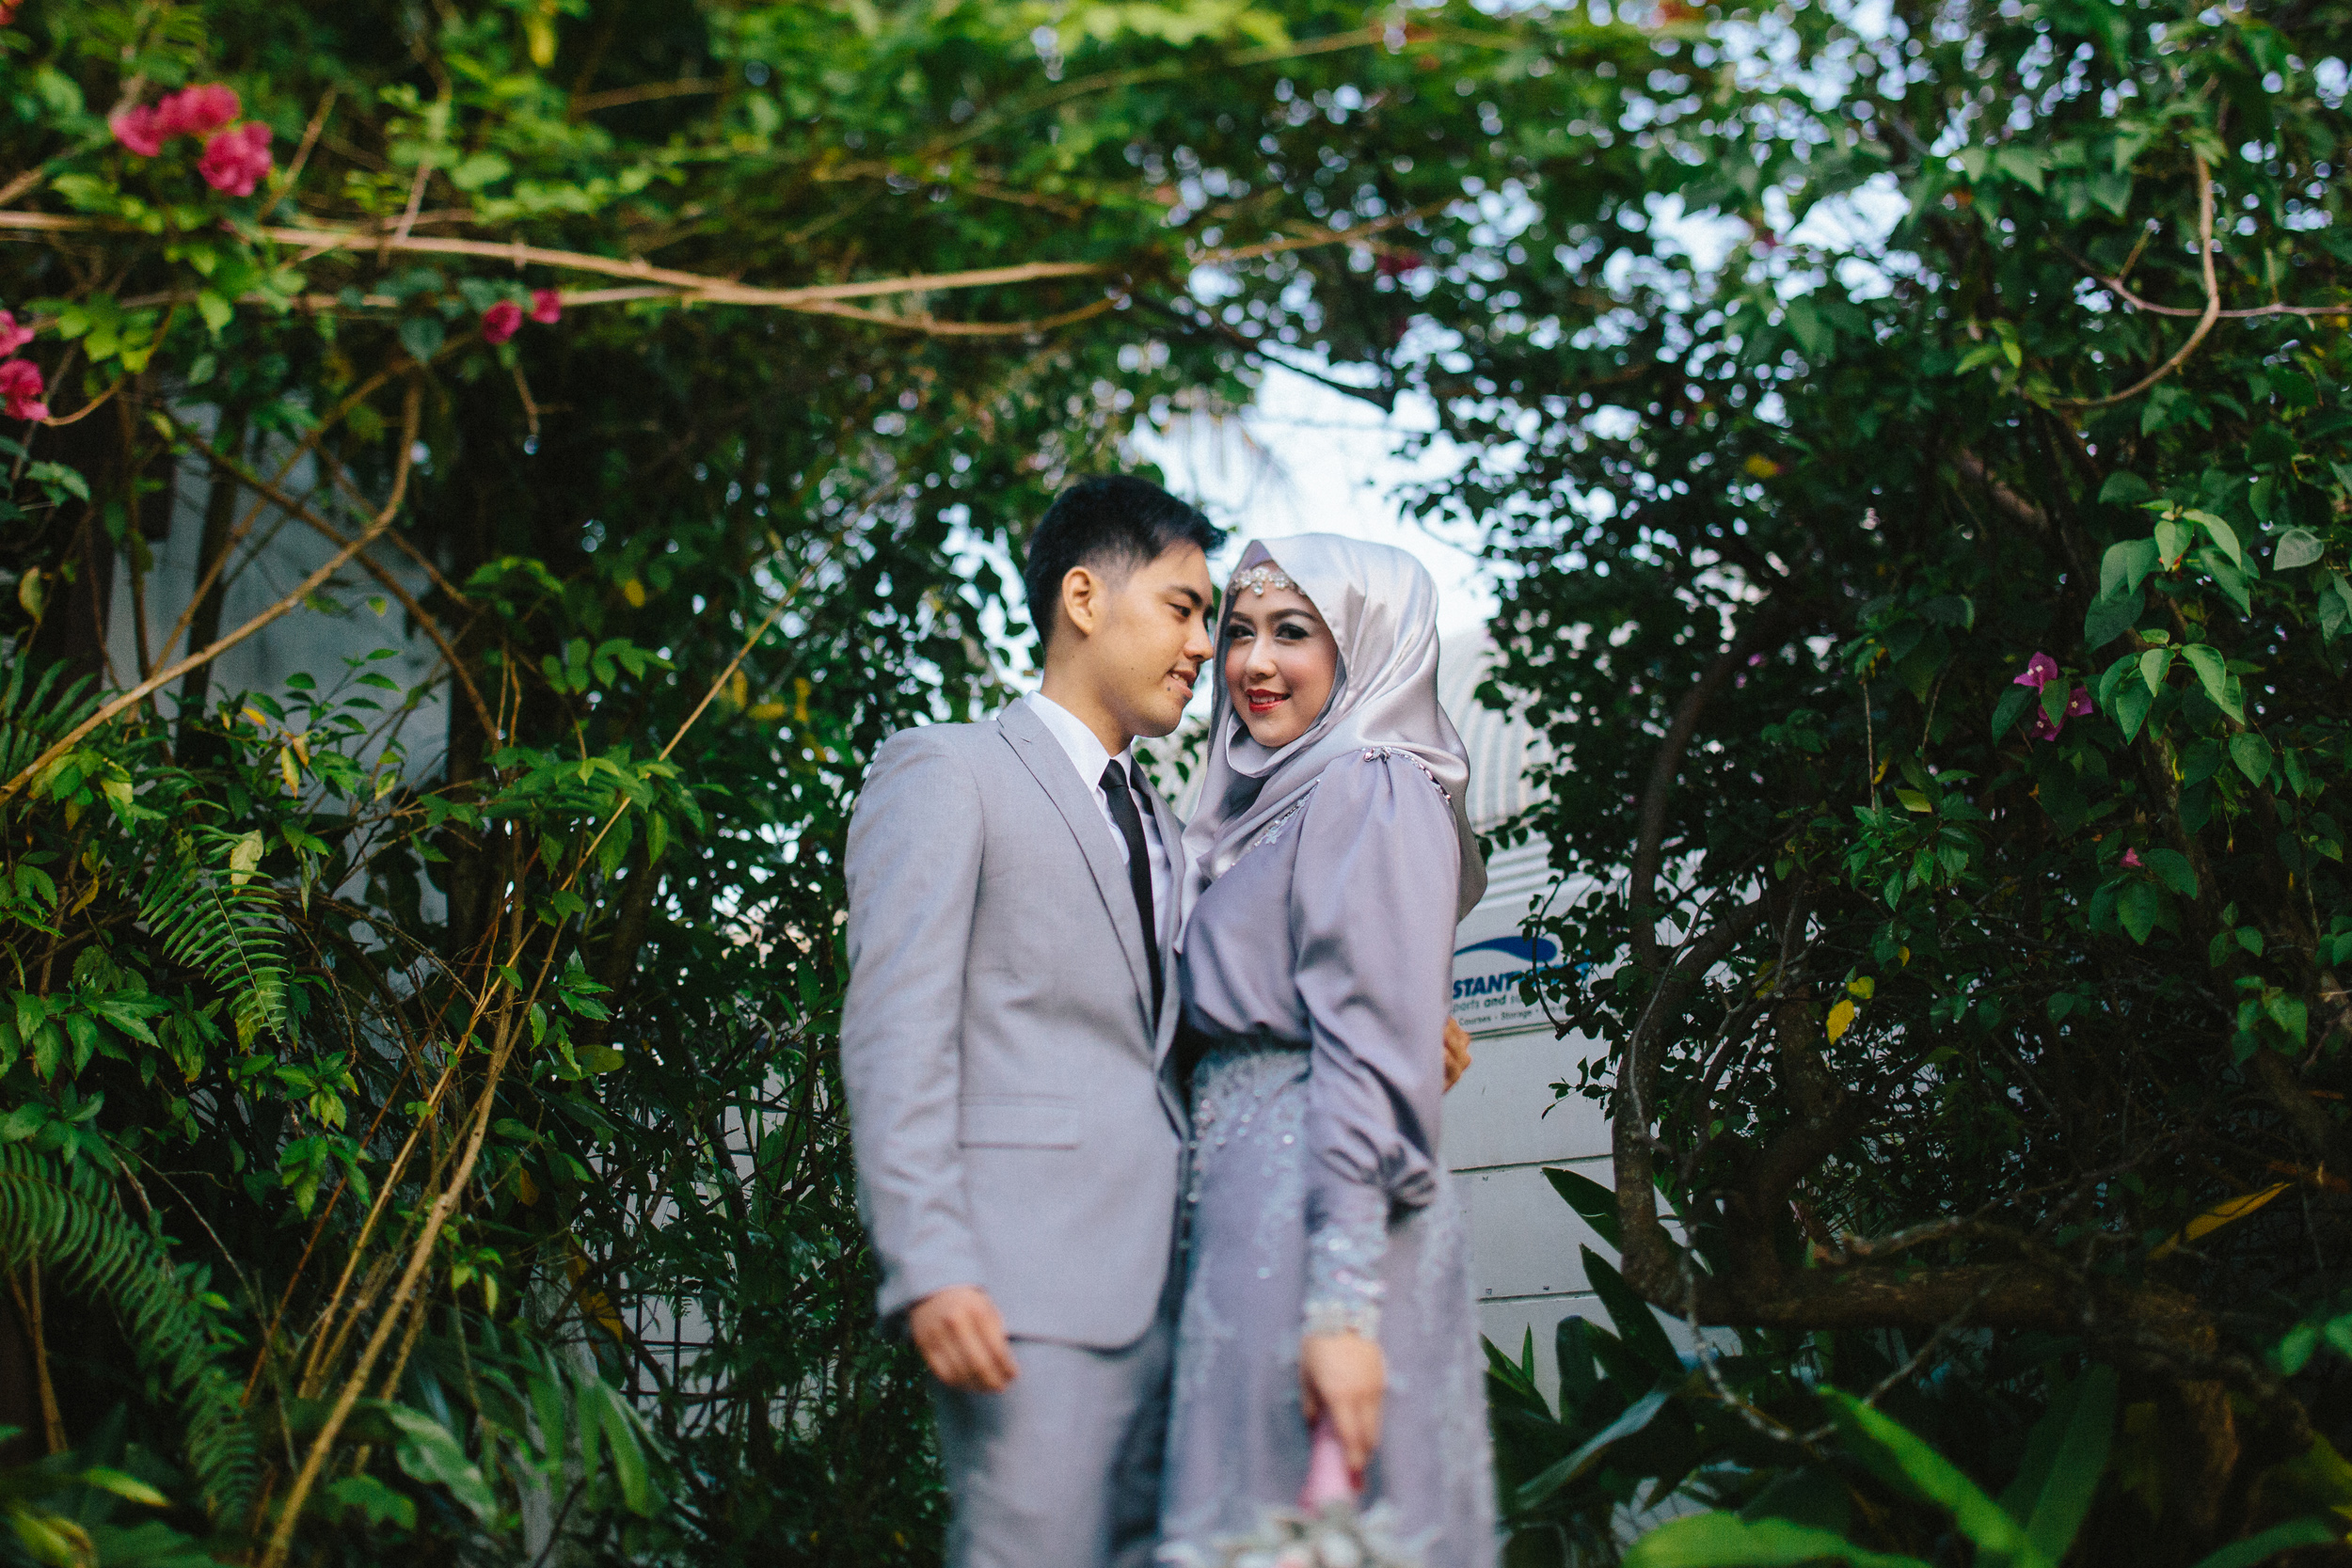 singapore-wedding-photographer-wemadethese-aisyah-helmi-64.jpg